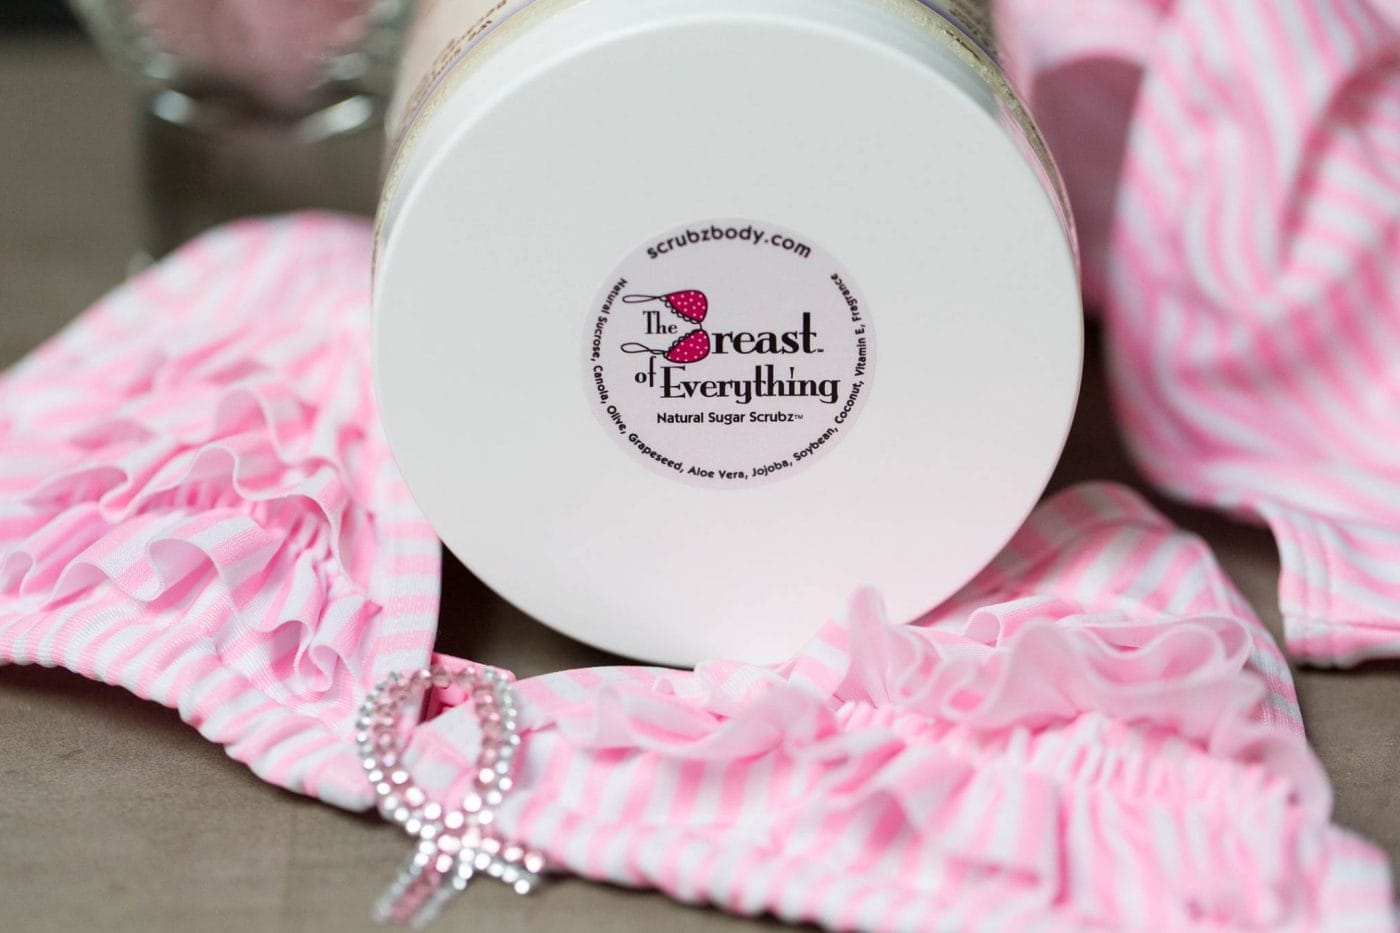 Breast of Everything Scrubz Sugar Scrub